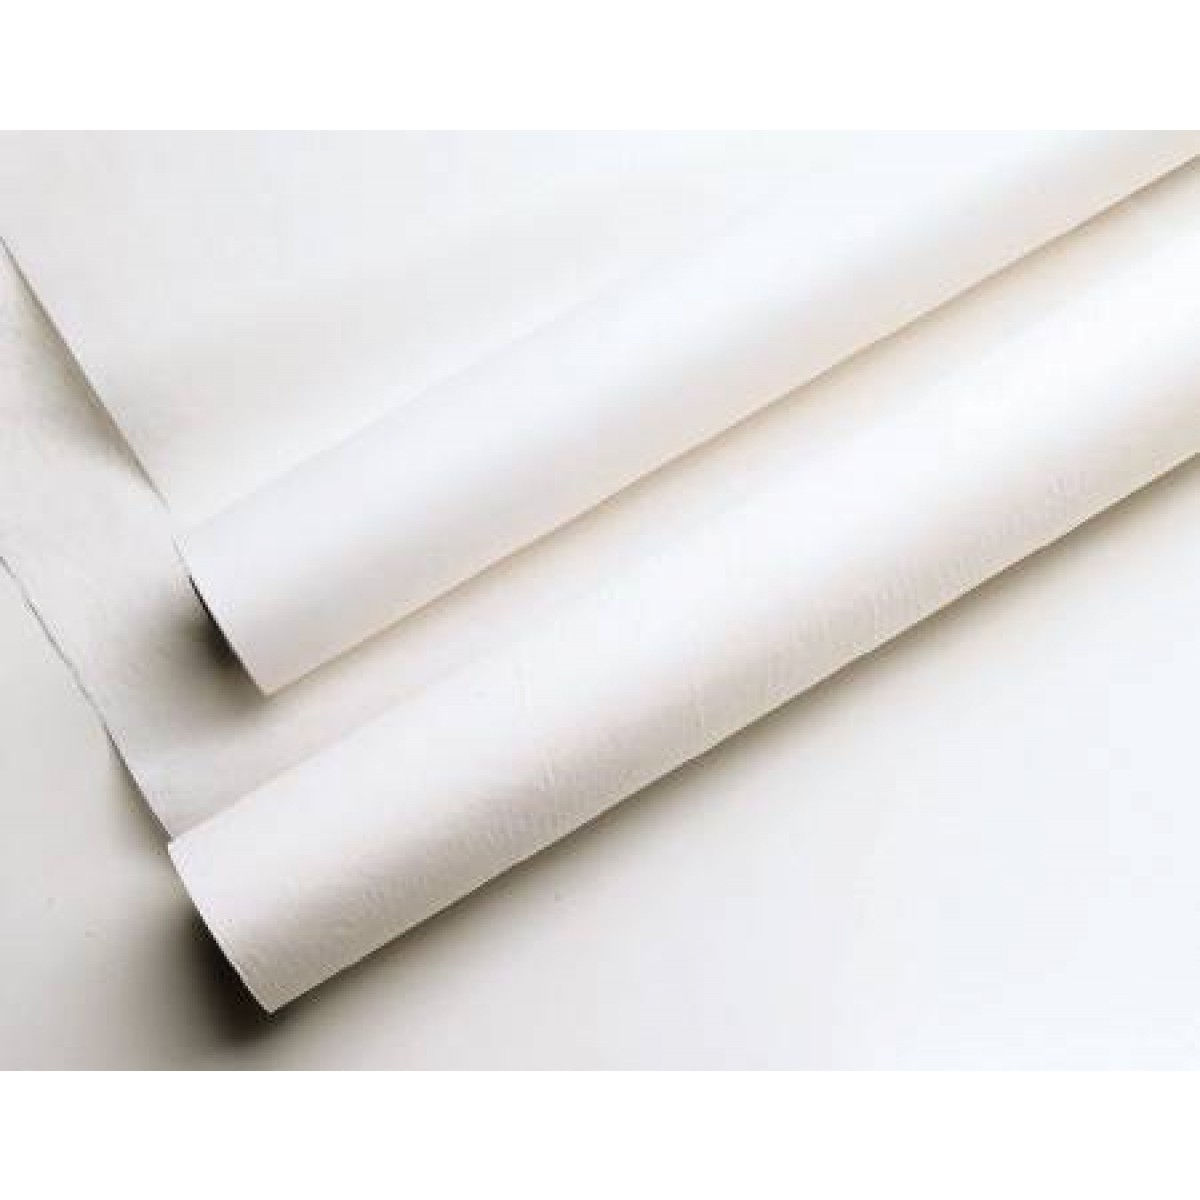 mckesson paper Table paper mckesson 21 inch white crepe log in for pricing and availability log in to order view alternatives item #113109 mckesson brand #18-802 table paper mckesson 18 inch white crepe log in for pricing and availability log in to order view alternatives.